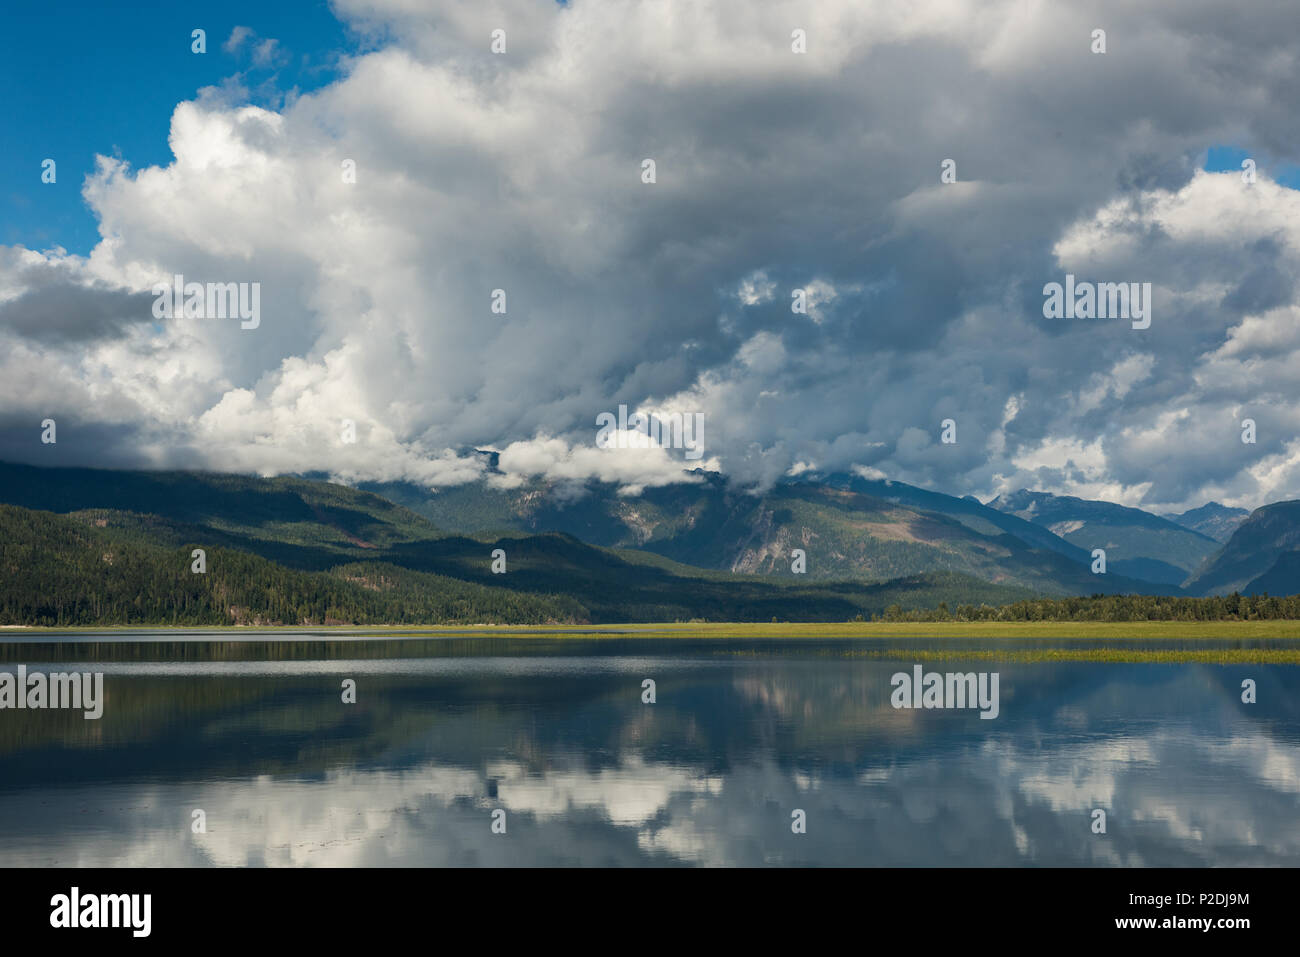 Cloudy sky over green mountains and river - Stock Image